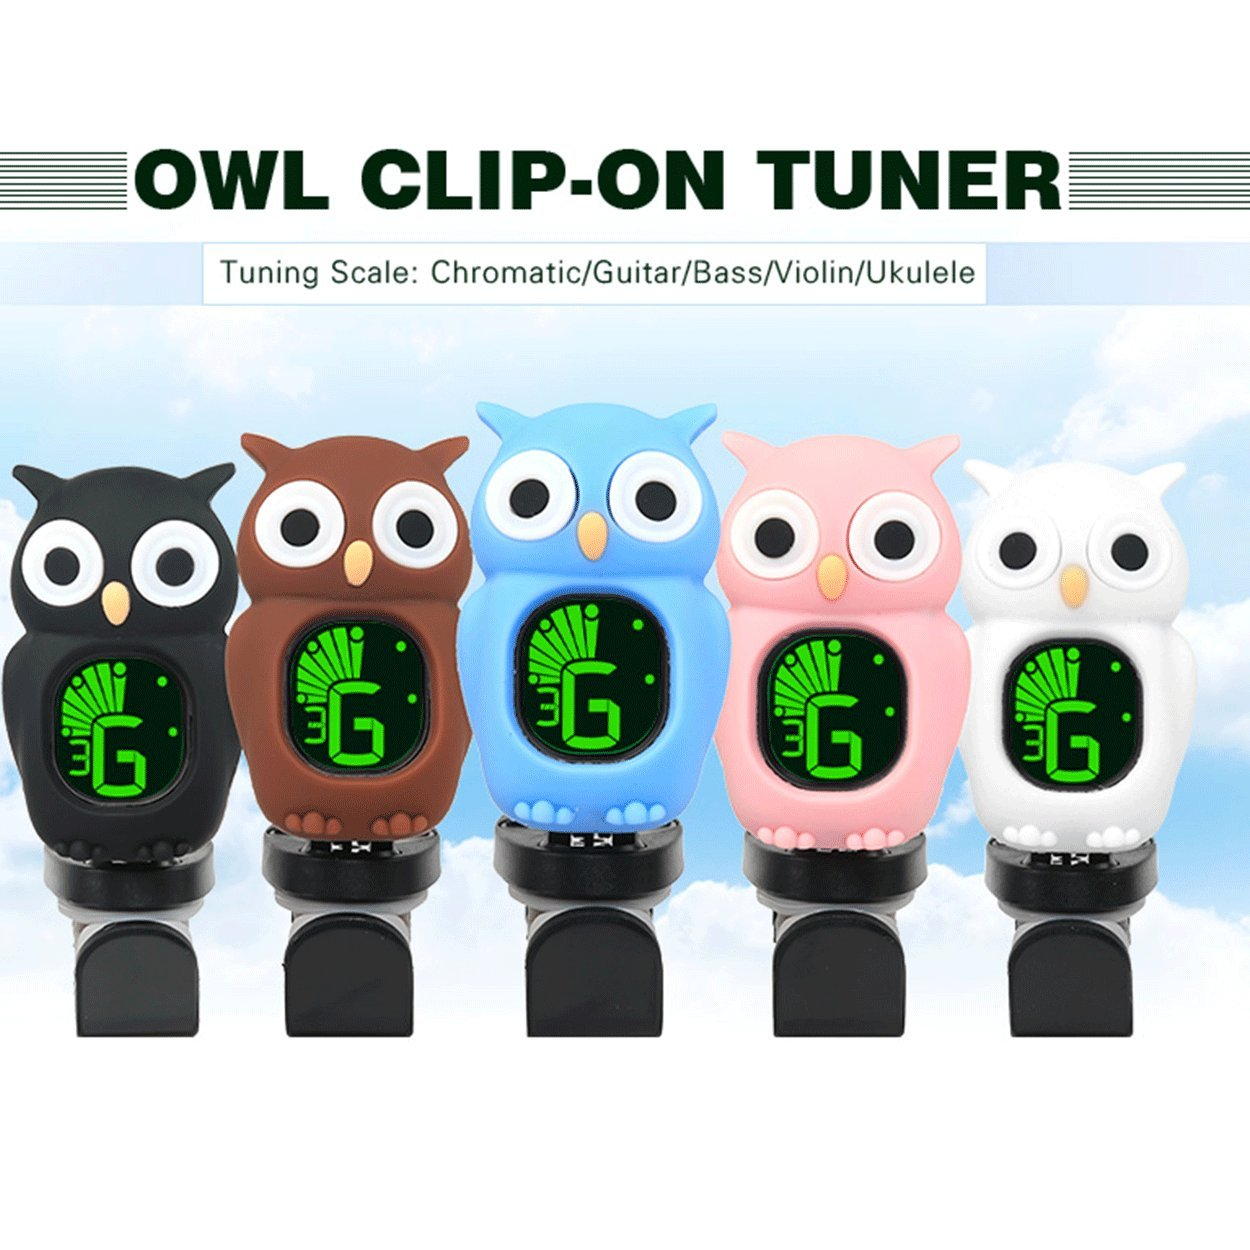 Guitar Tuner Clip-On Cartoon with LCD Display for All Instruments with Bass, Ukulele,Guitar,Chromatic,Violin Accessories, high-precision calibration, automatic shutdown. (Owl pink) Dulphee Musicals B7